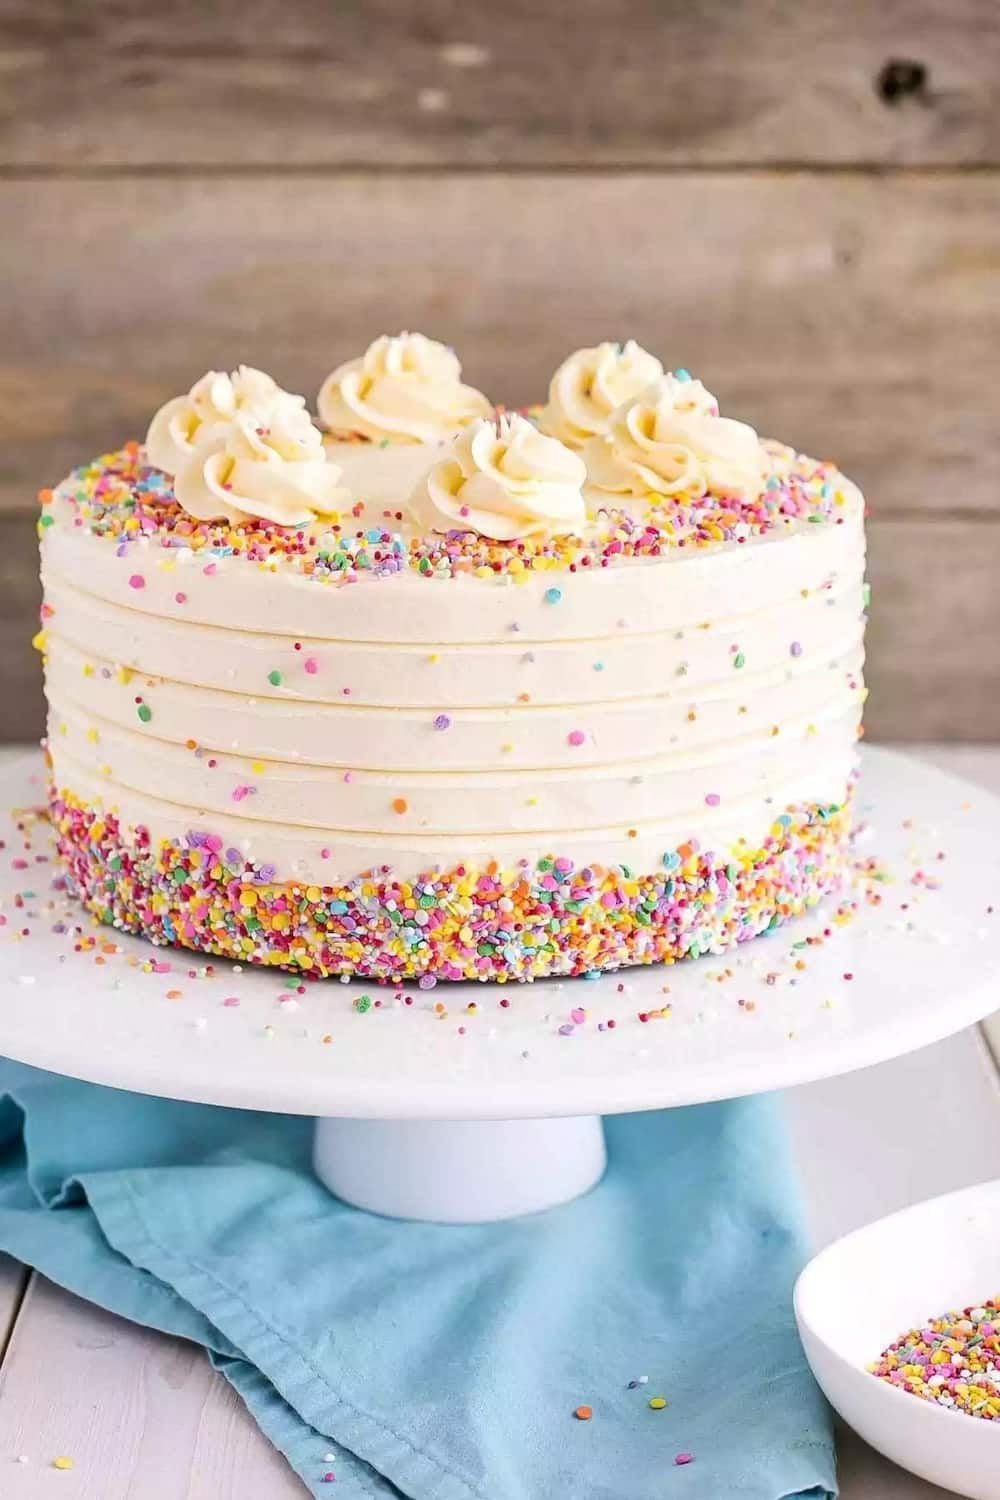 Latest butter icing designs for cakes in Nigeria Legit.ng